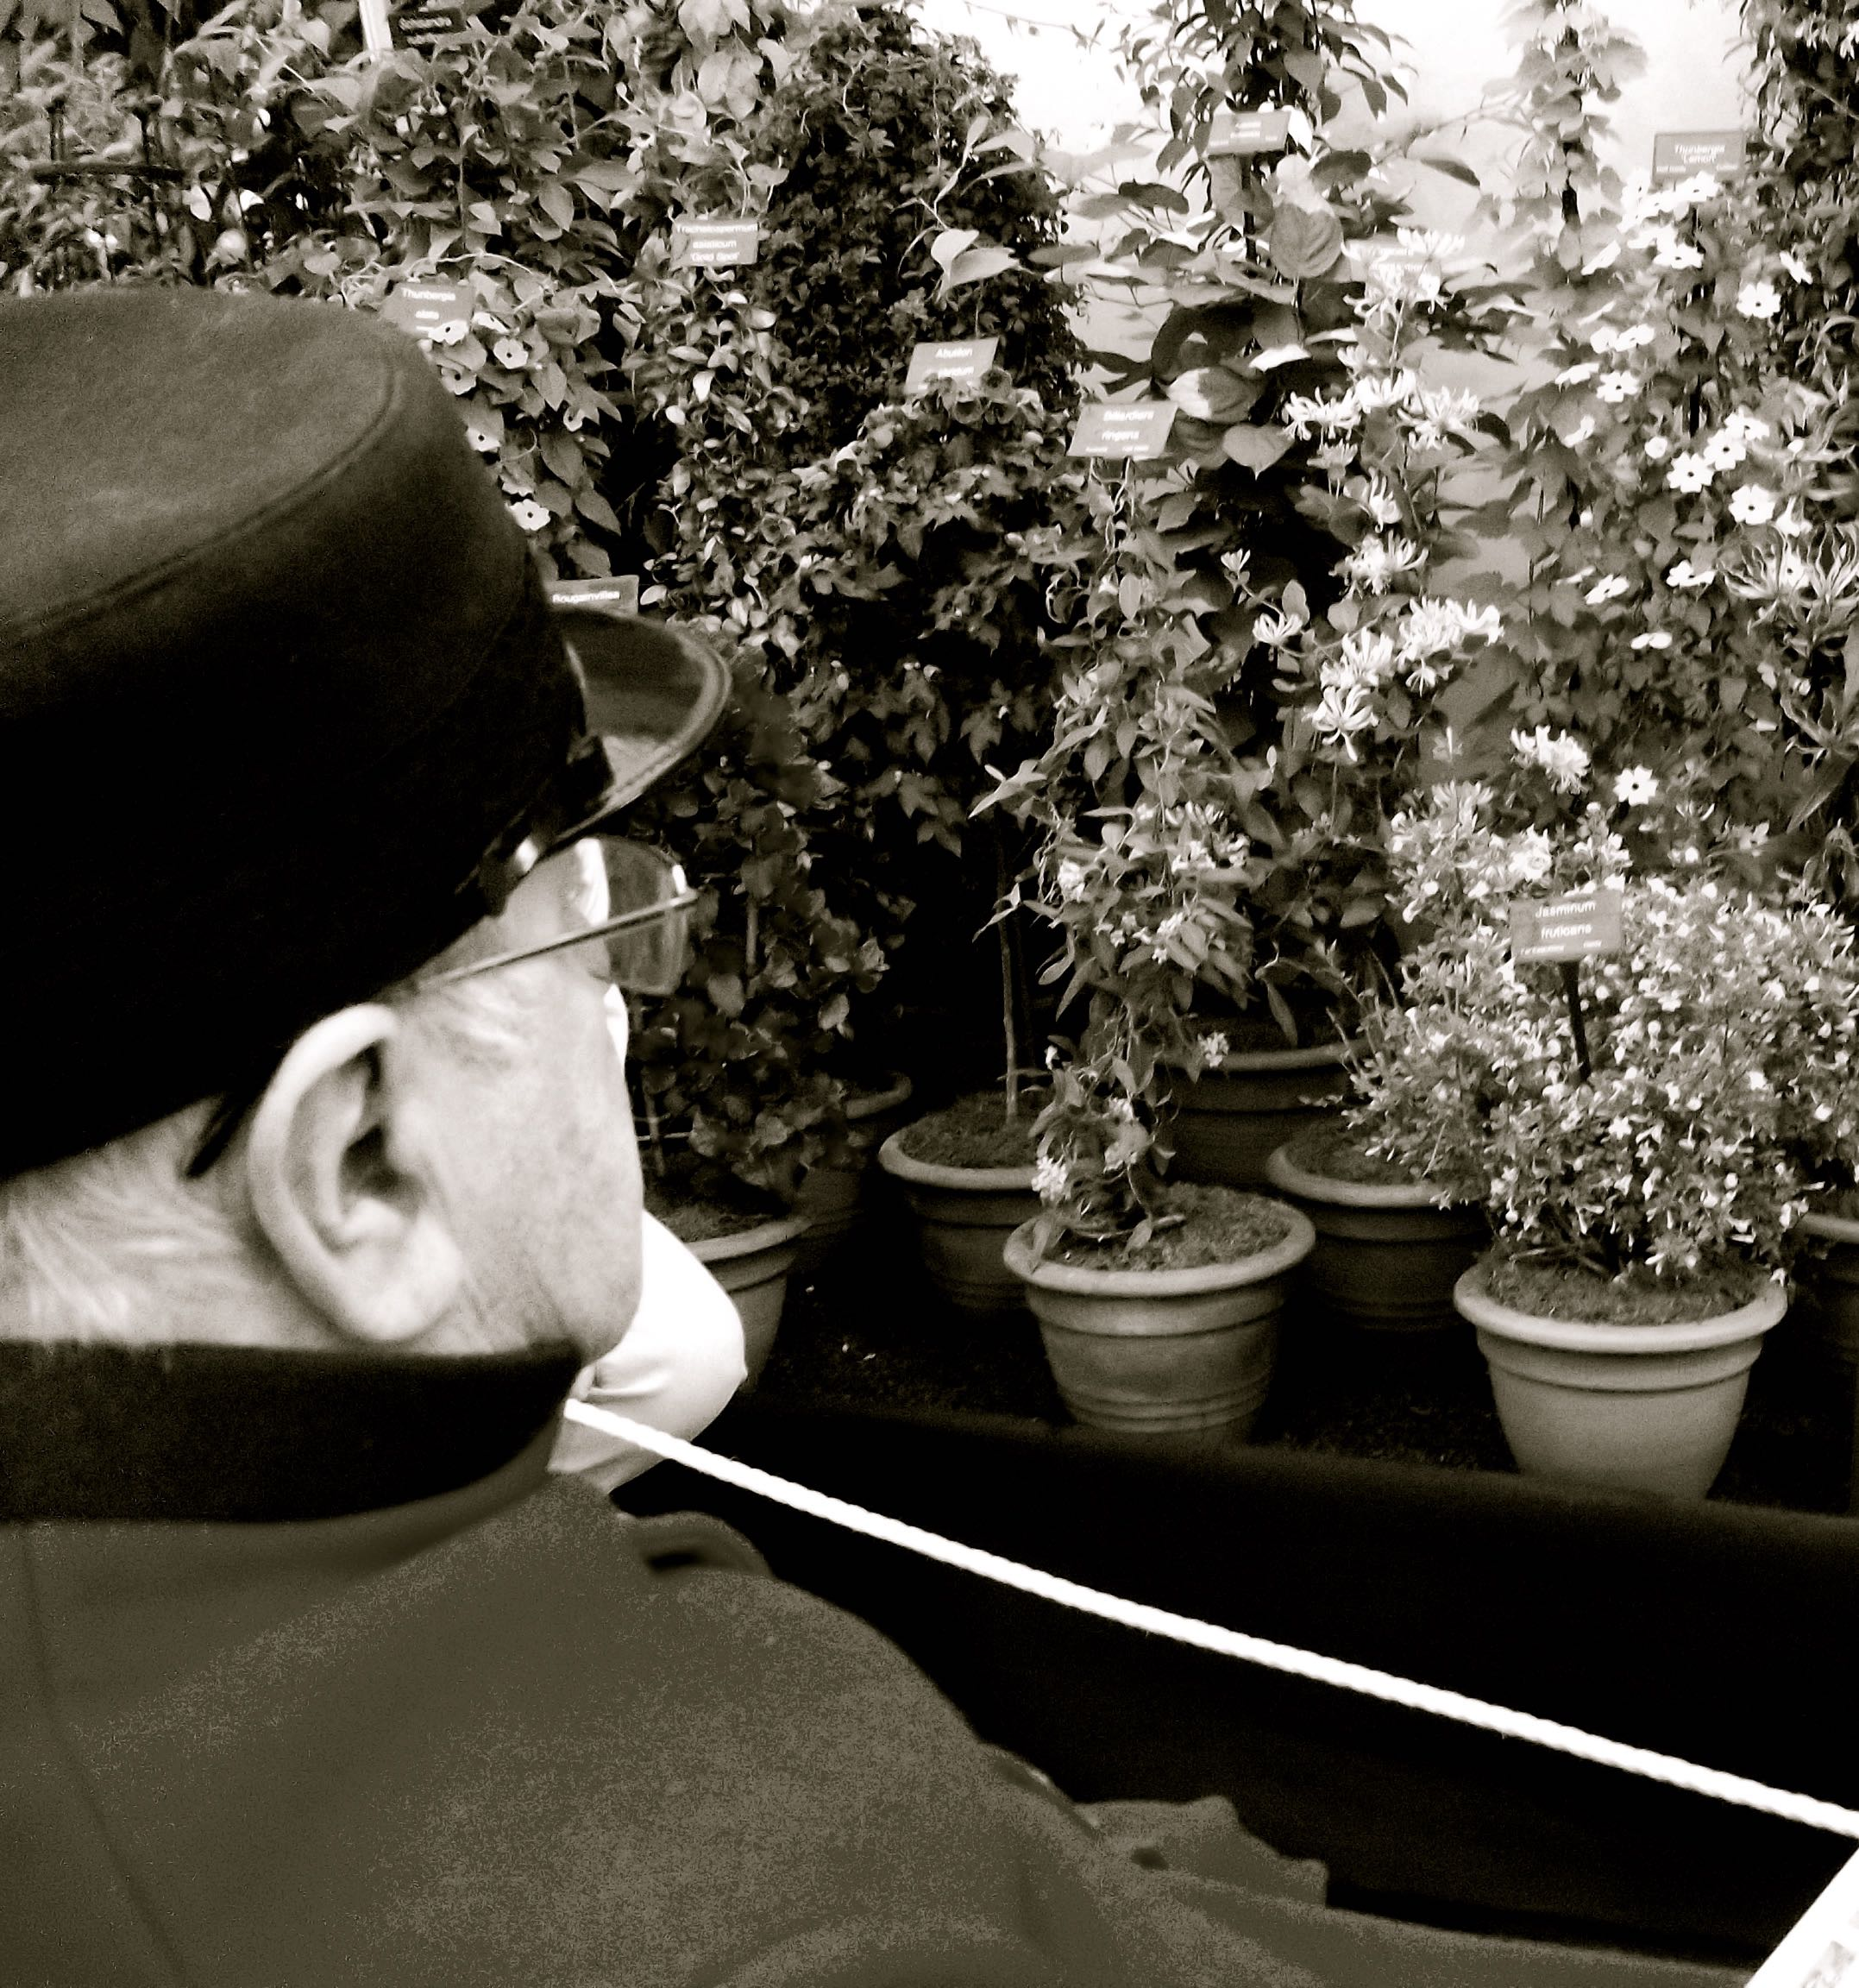 A CHELSEA PENSIONER ADMIRING THE BLOOMS